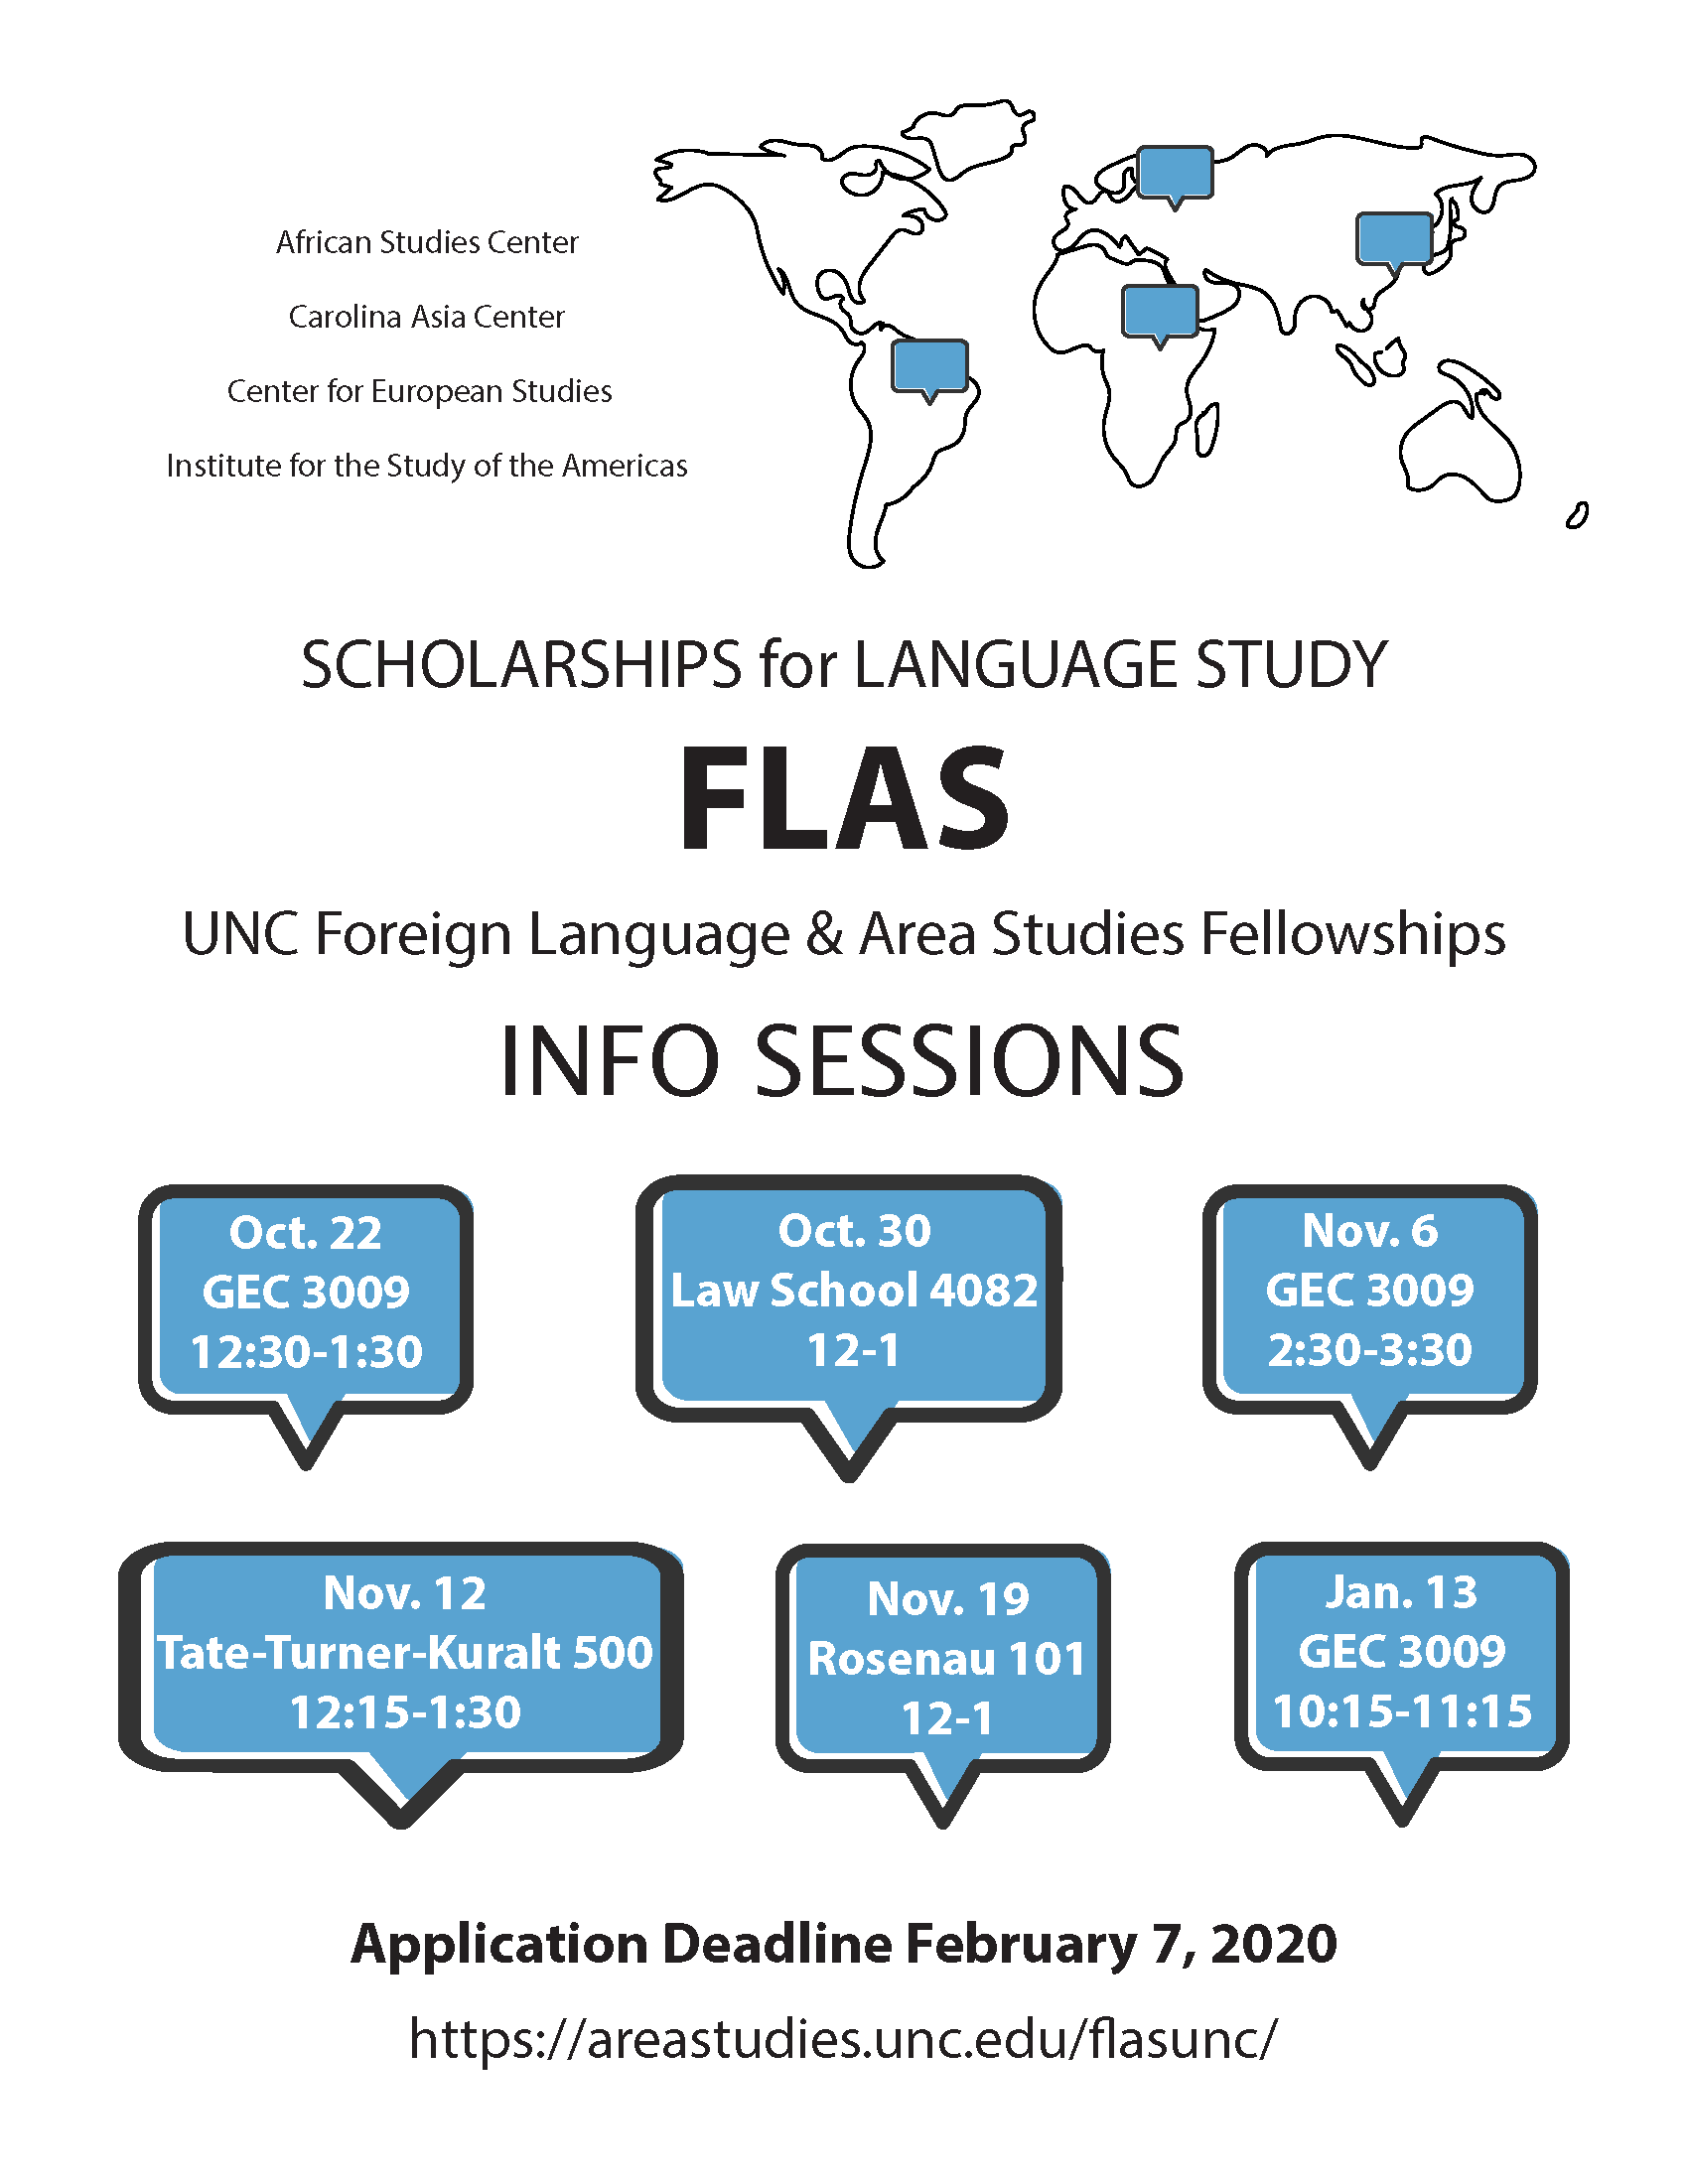 UNC Foreign Language & Area Studies Fellowships Information Session